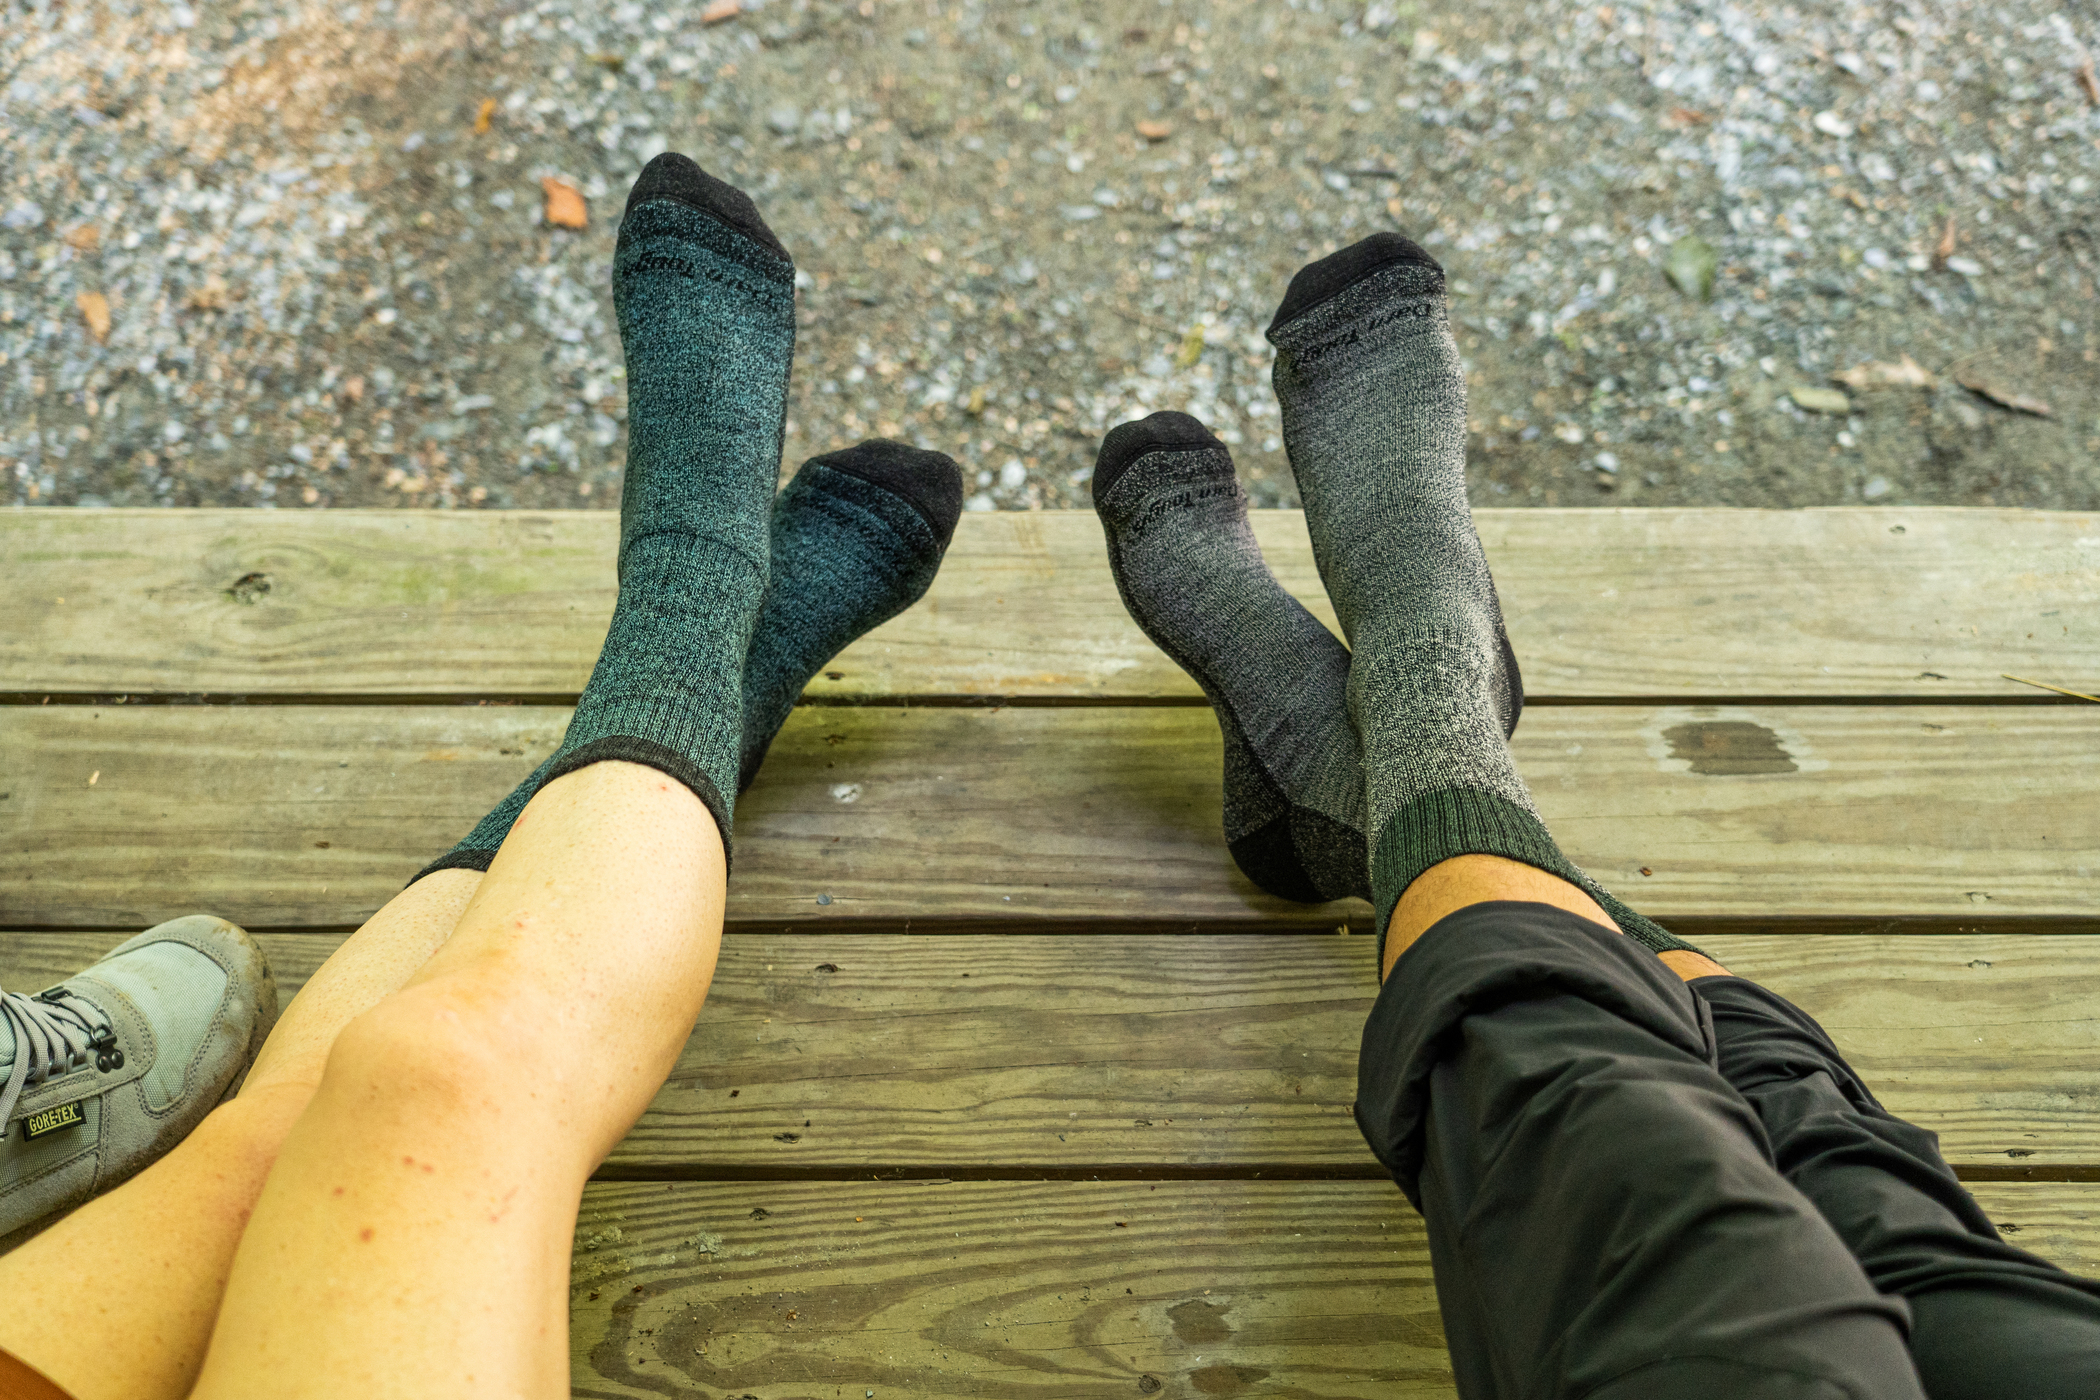 We've worn Darn Tough socks and here's what we think